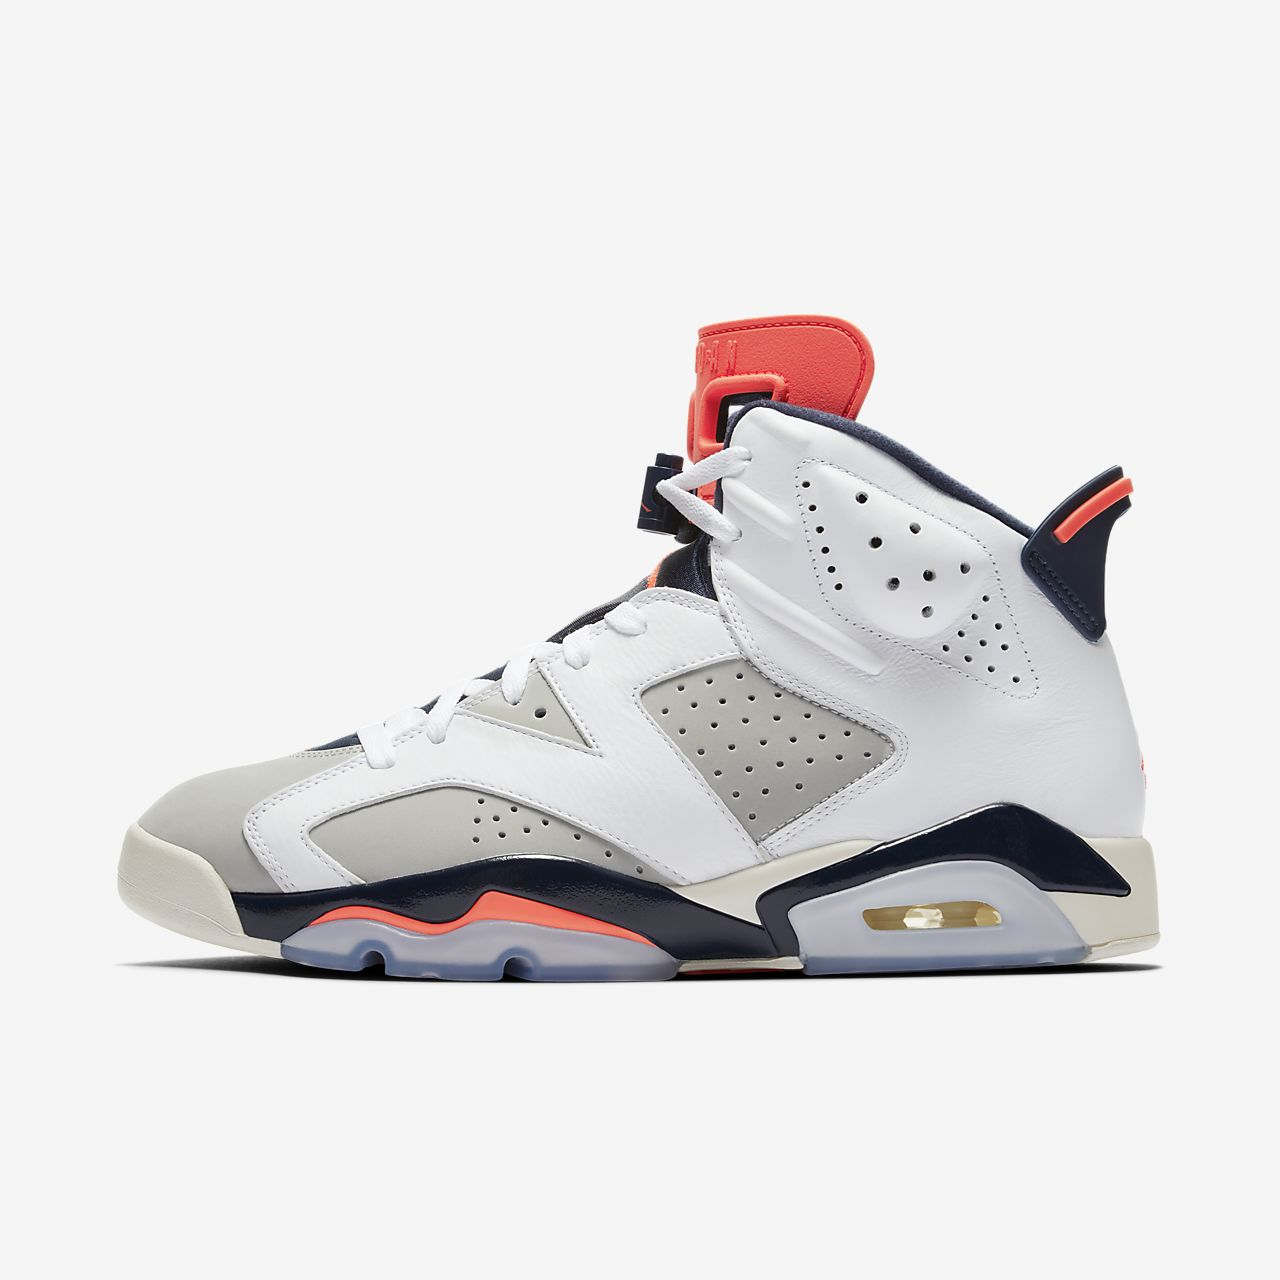 new style e97c2 2cc9f Air Jordan 6 Retro